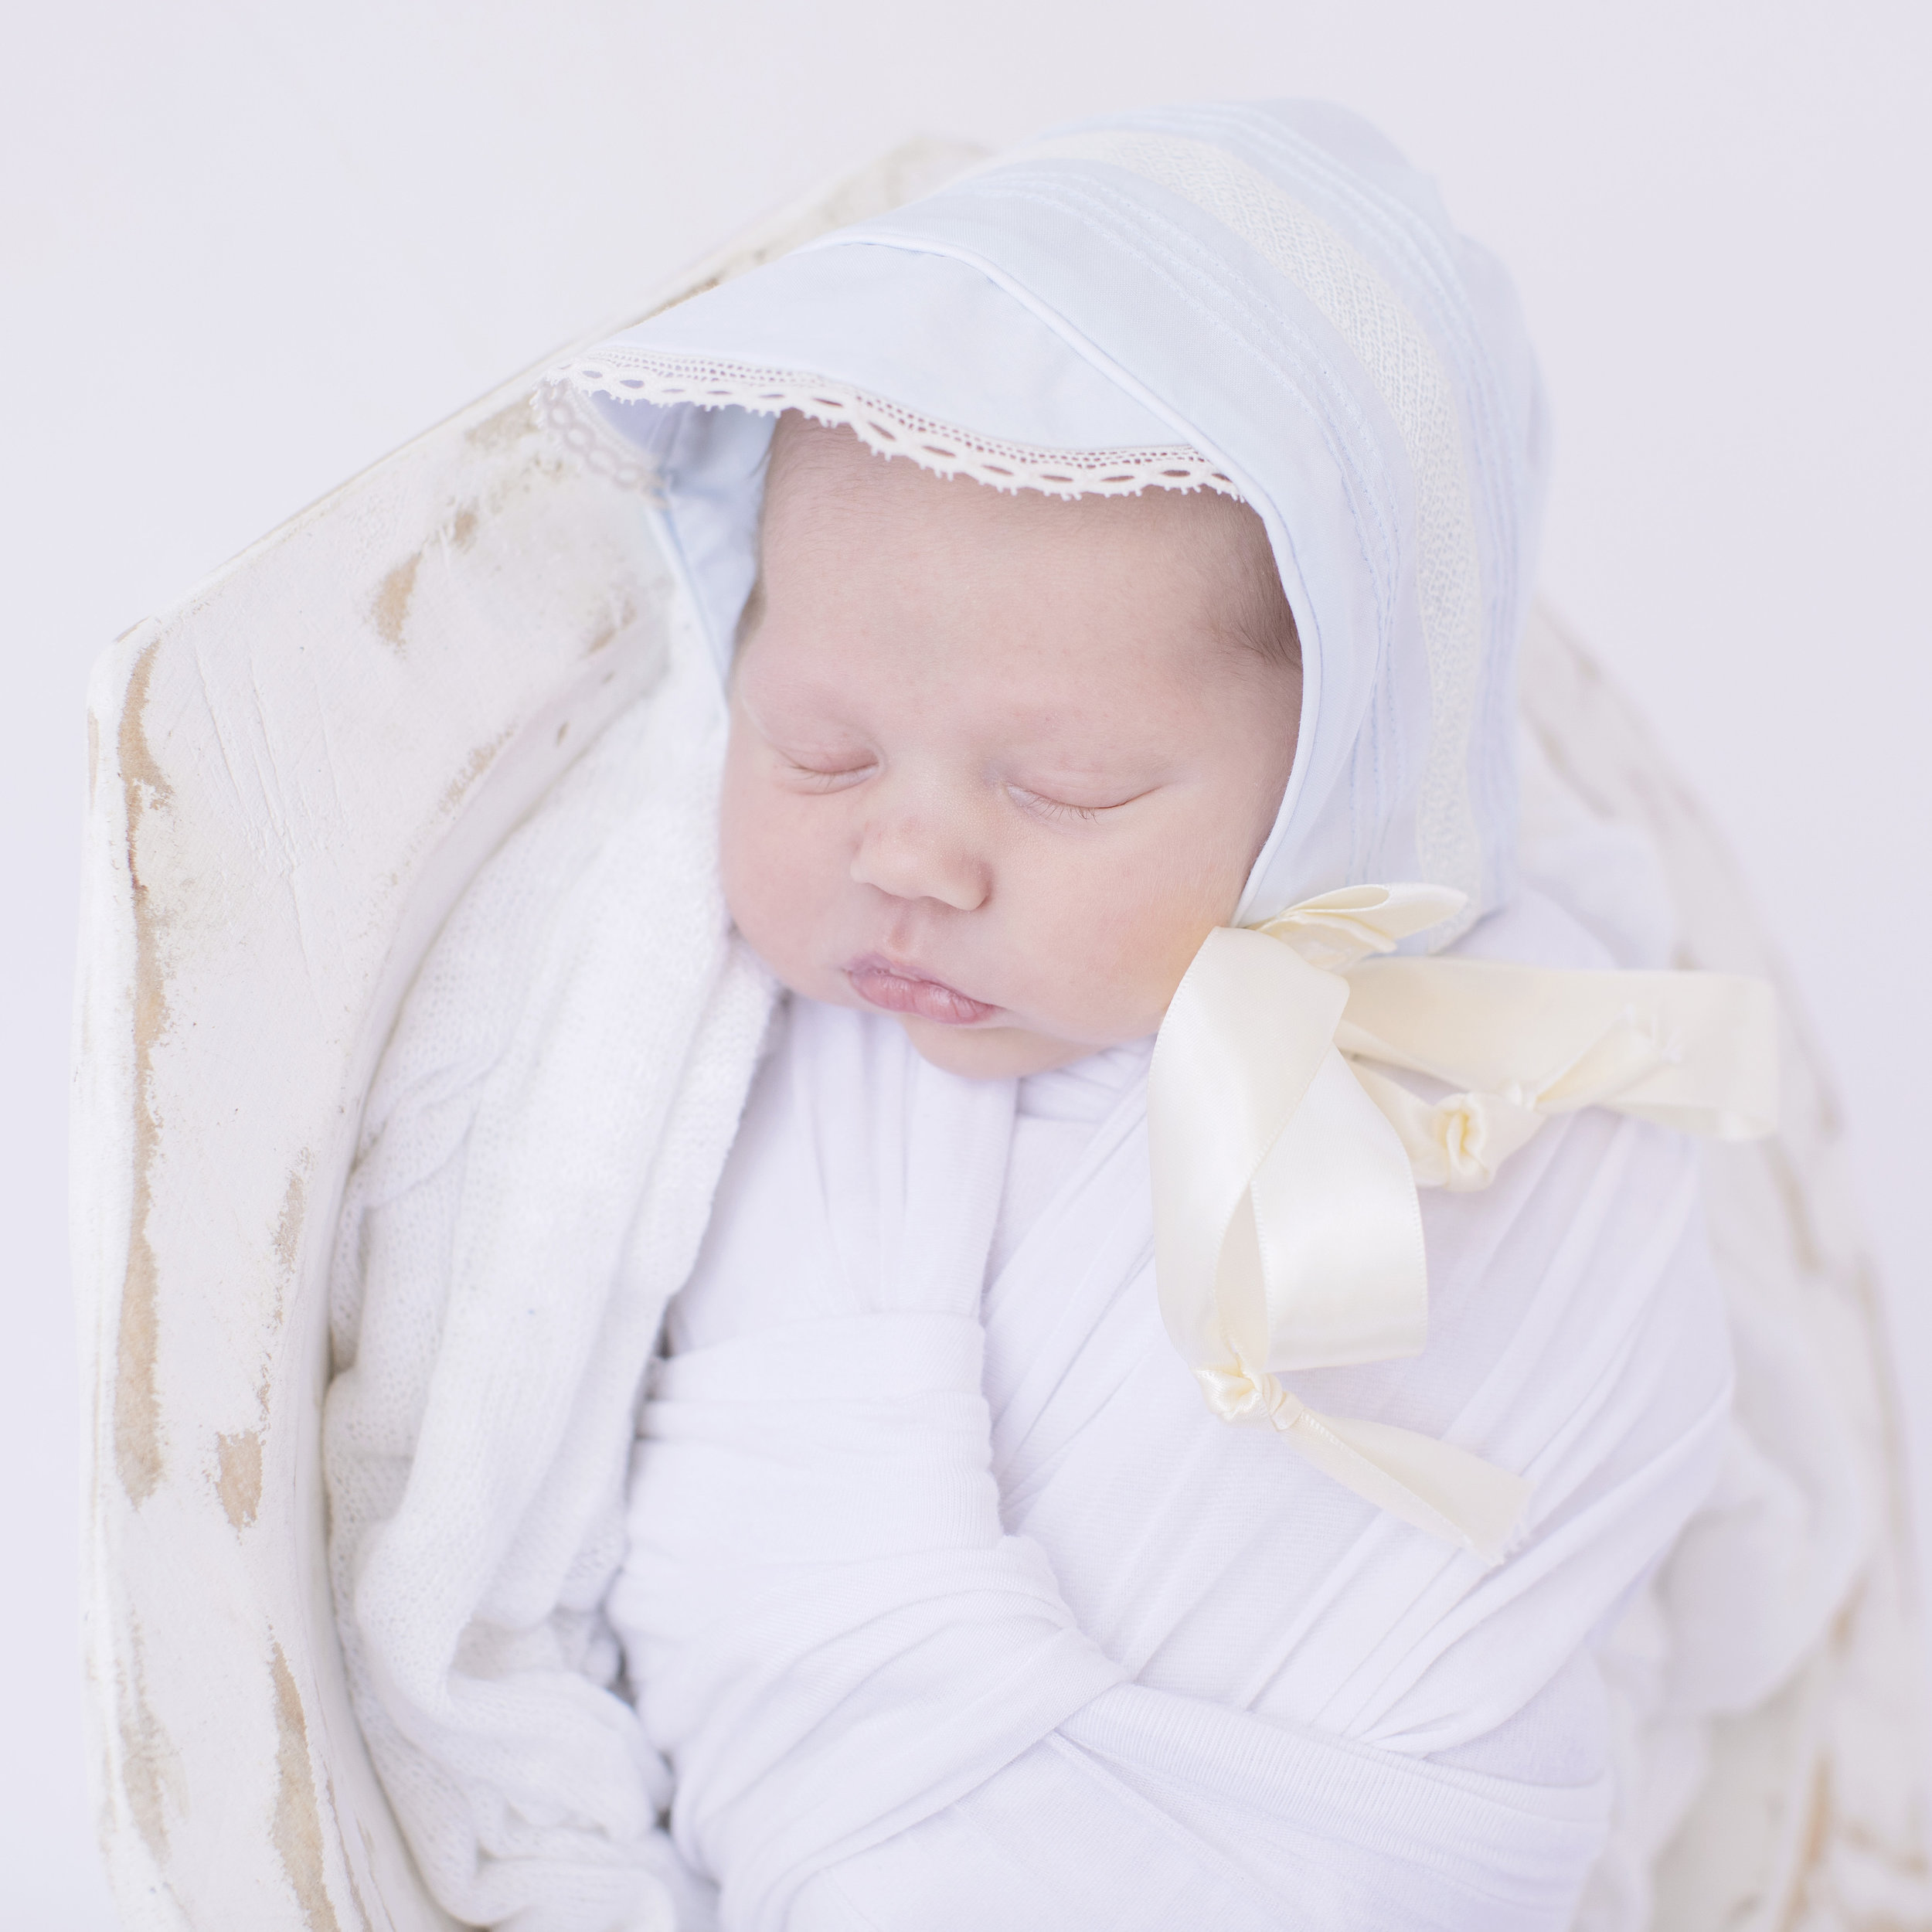 Newborn-Baby-Boy-Lace-Bonnet-Professional-Photographer.jpg